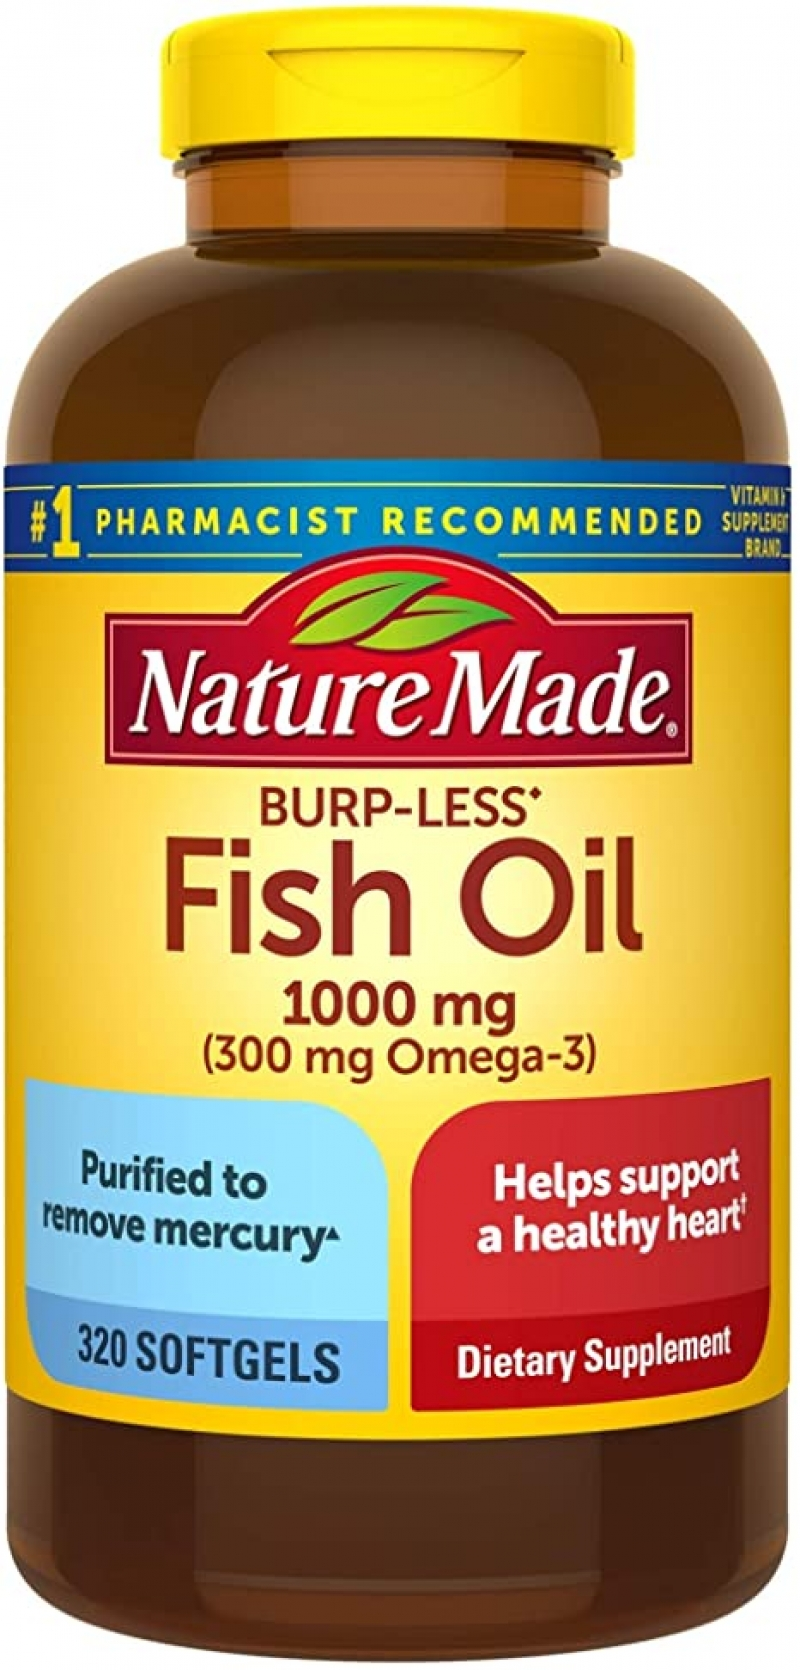 ihocon: Nature Made Fish Oil Burp-Less 1000 mg, 320 Softgels, Fish Oil Omega 3 Supplement For Heart Health   魚油